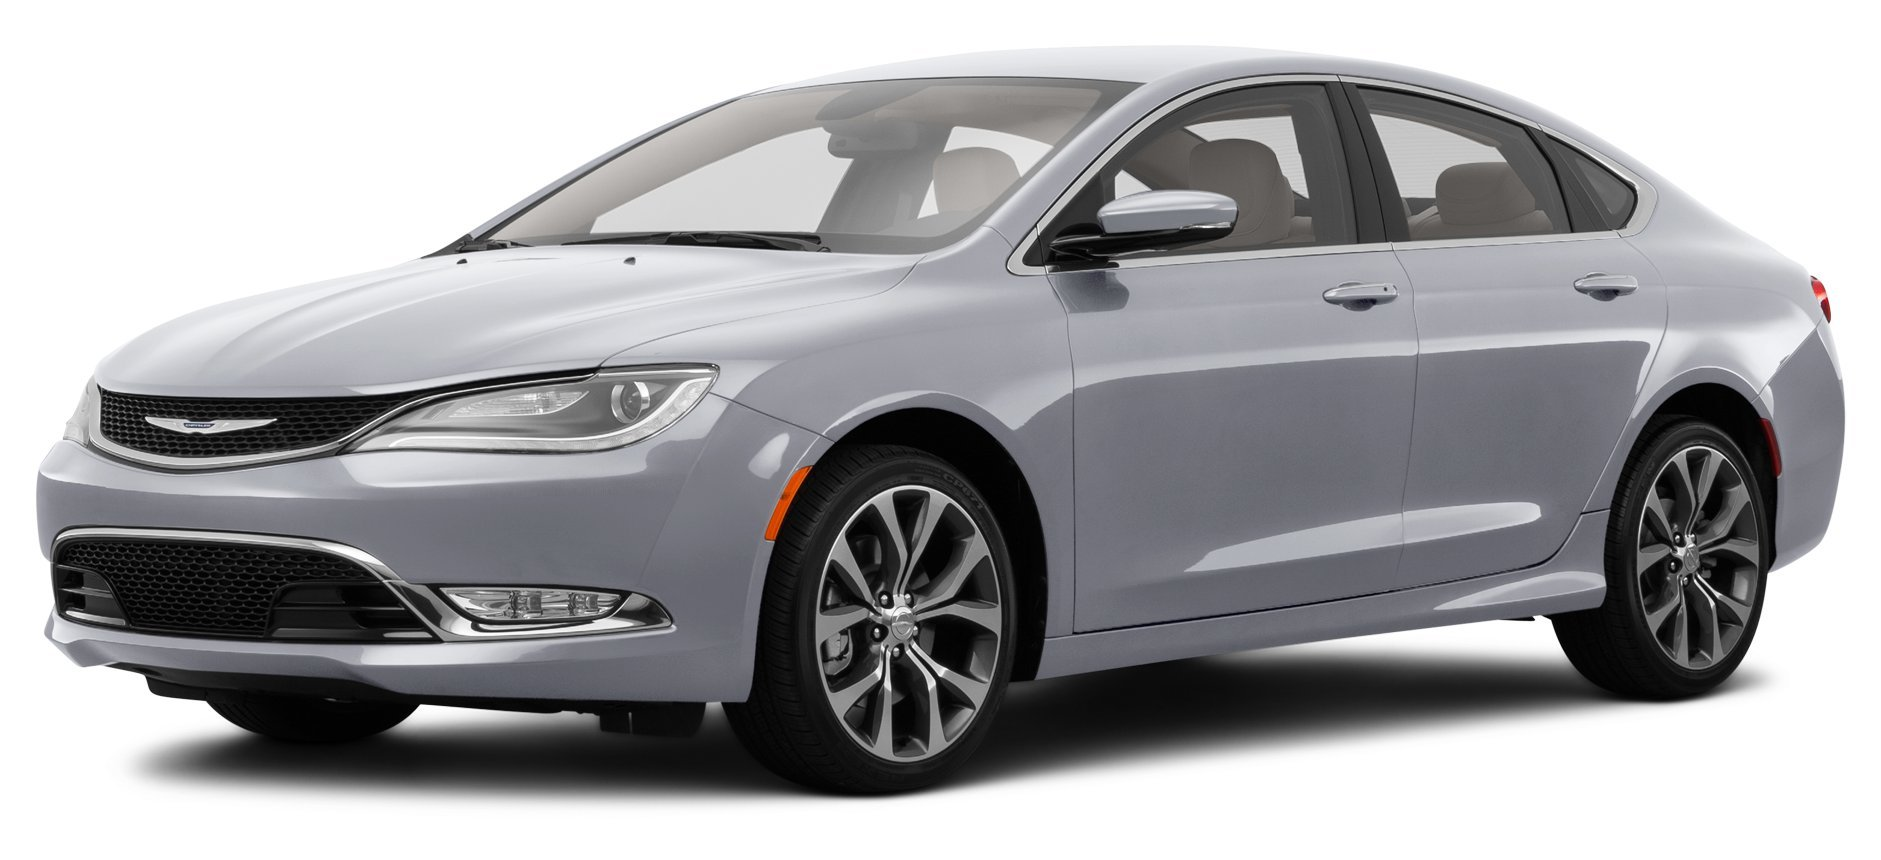 2016 Chevrolet Malibu Reviews Images And Specs Vehicles Ignition Circuit Diagram Checks For The 1956 Passenger Cars Chrysler 200 C 4 Door Sedan Front Wheel Drive